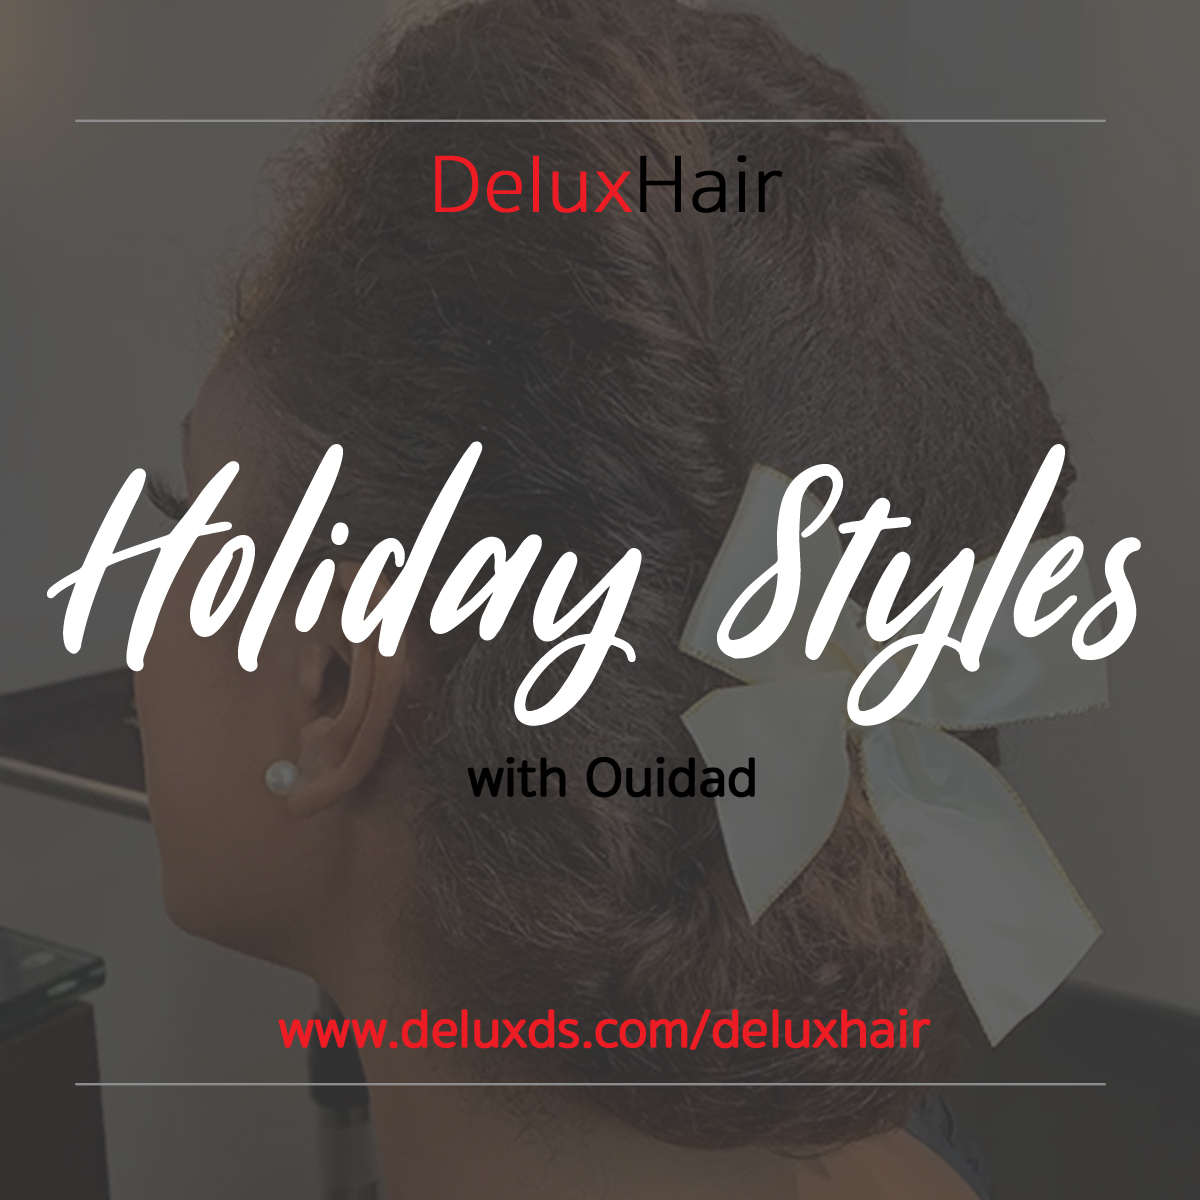 DeluxHair - Ouidad Holiday Natural Hairstyles